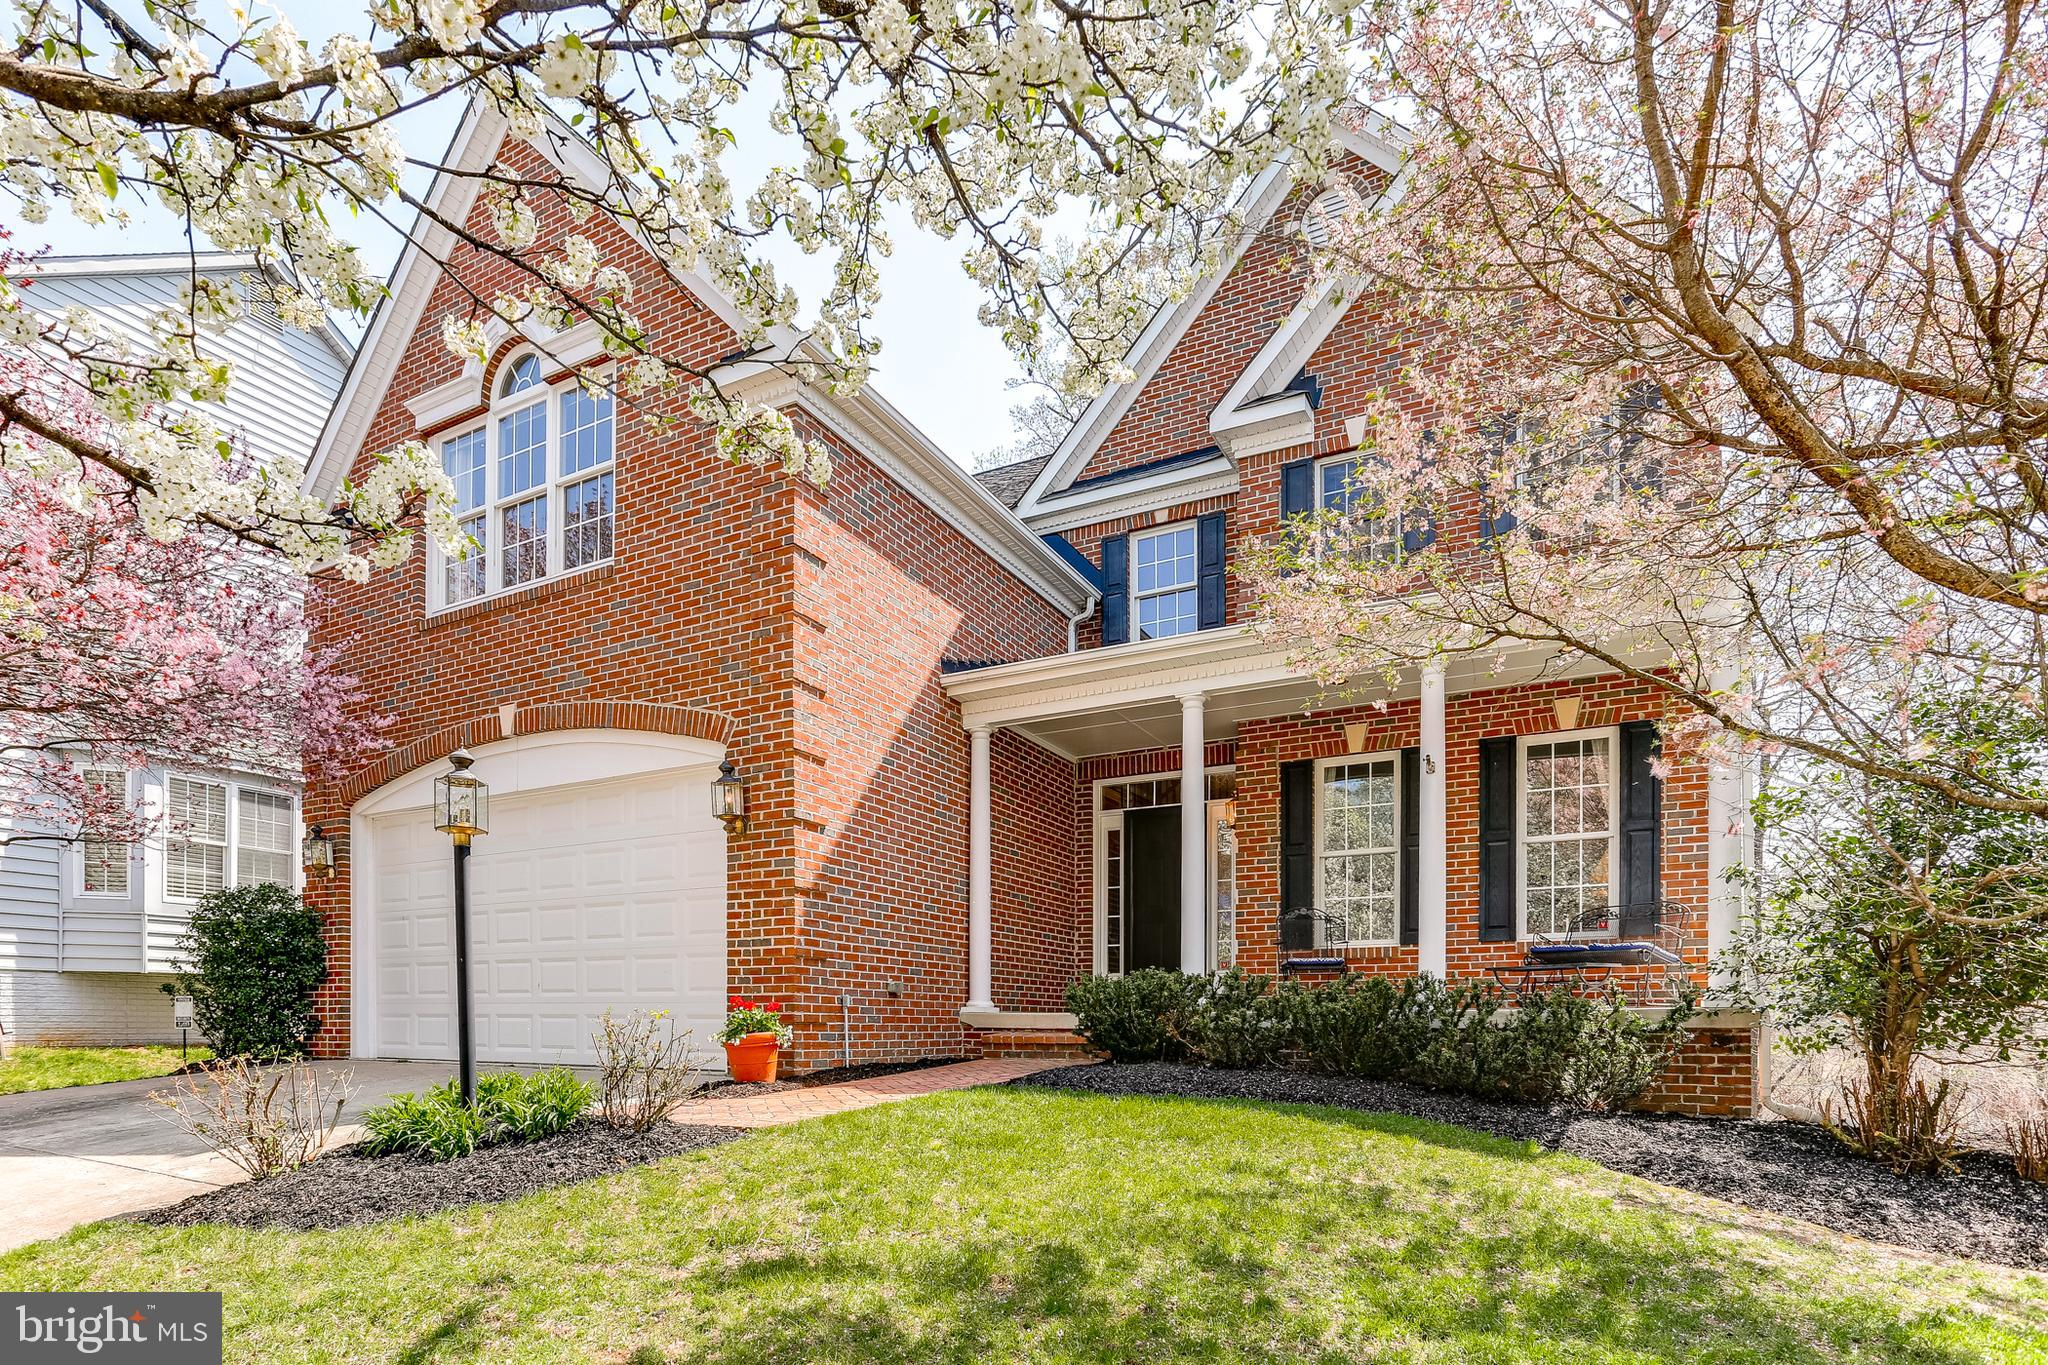 Welcome home to this stunning 5 BR, 3.5 BA home perfectly situated on a quiet cul-de-sac in the frie